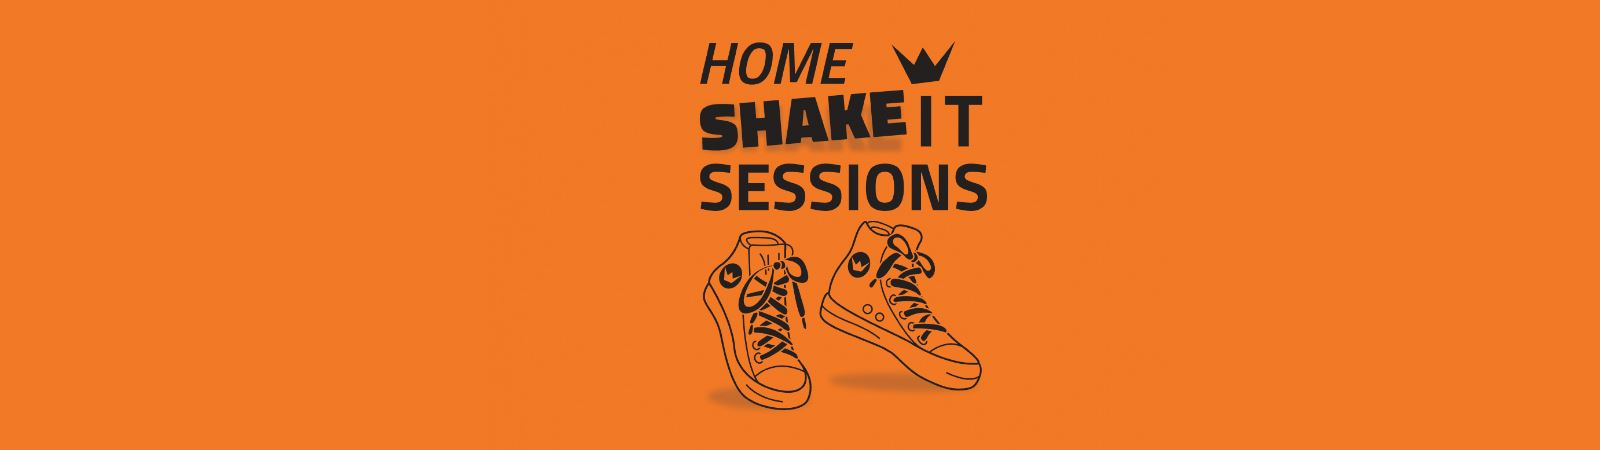 Home Shake It Sessions